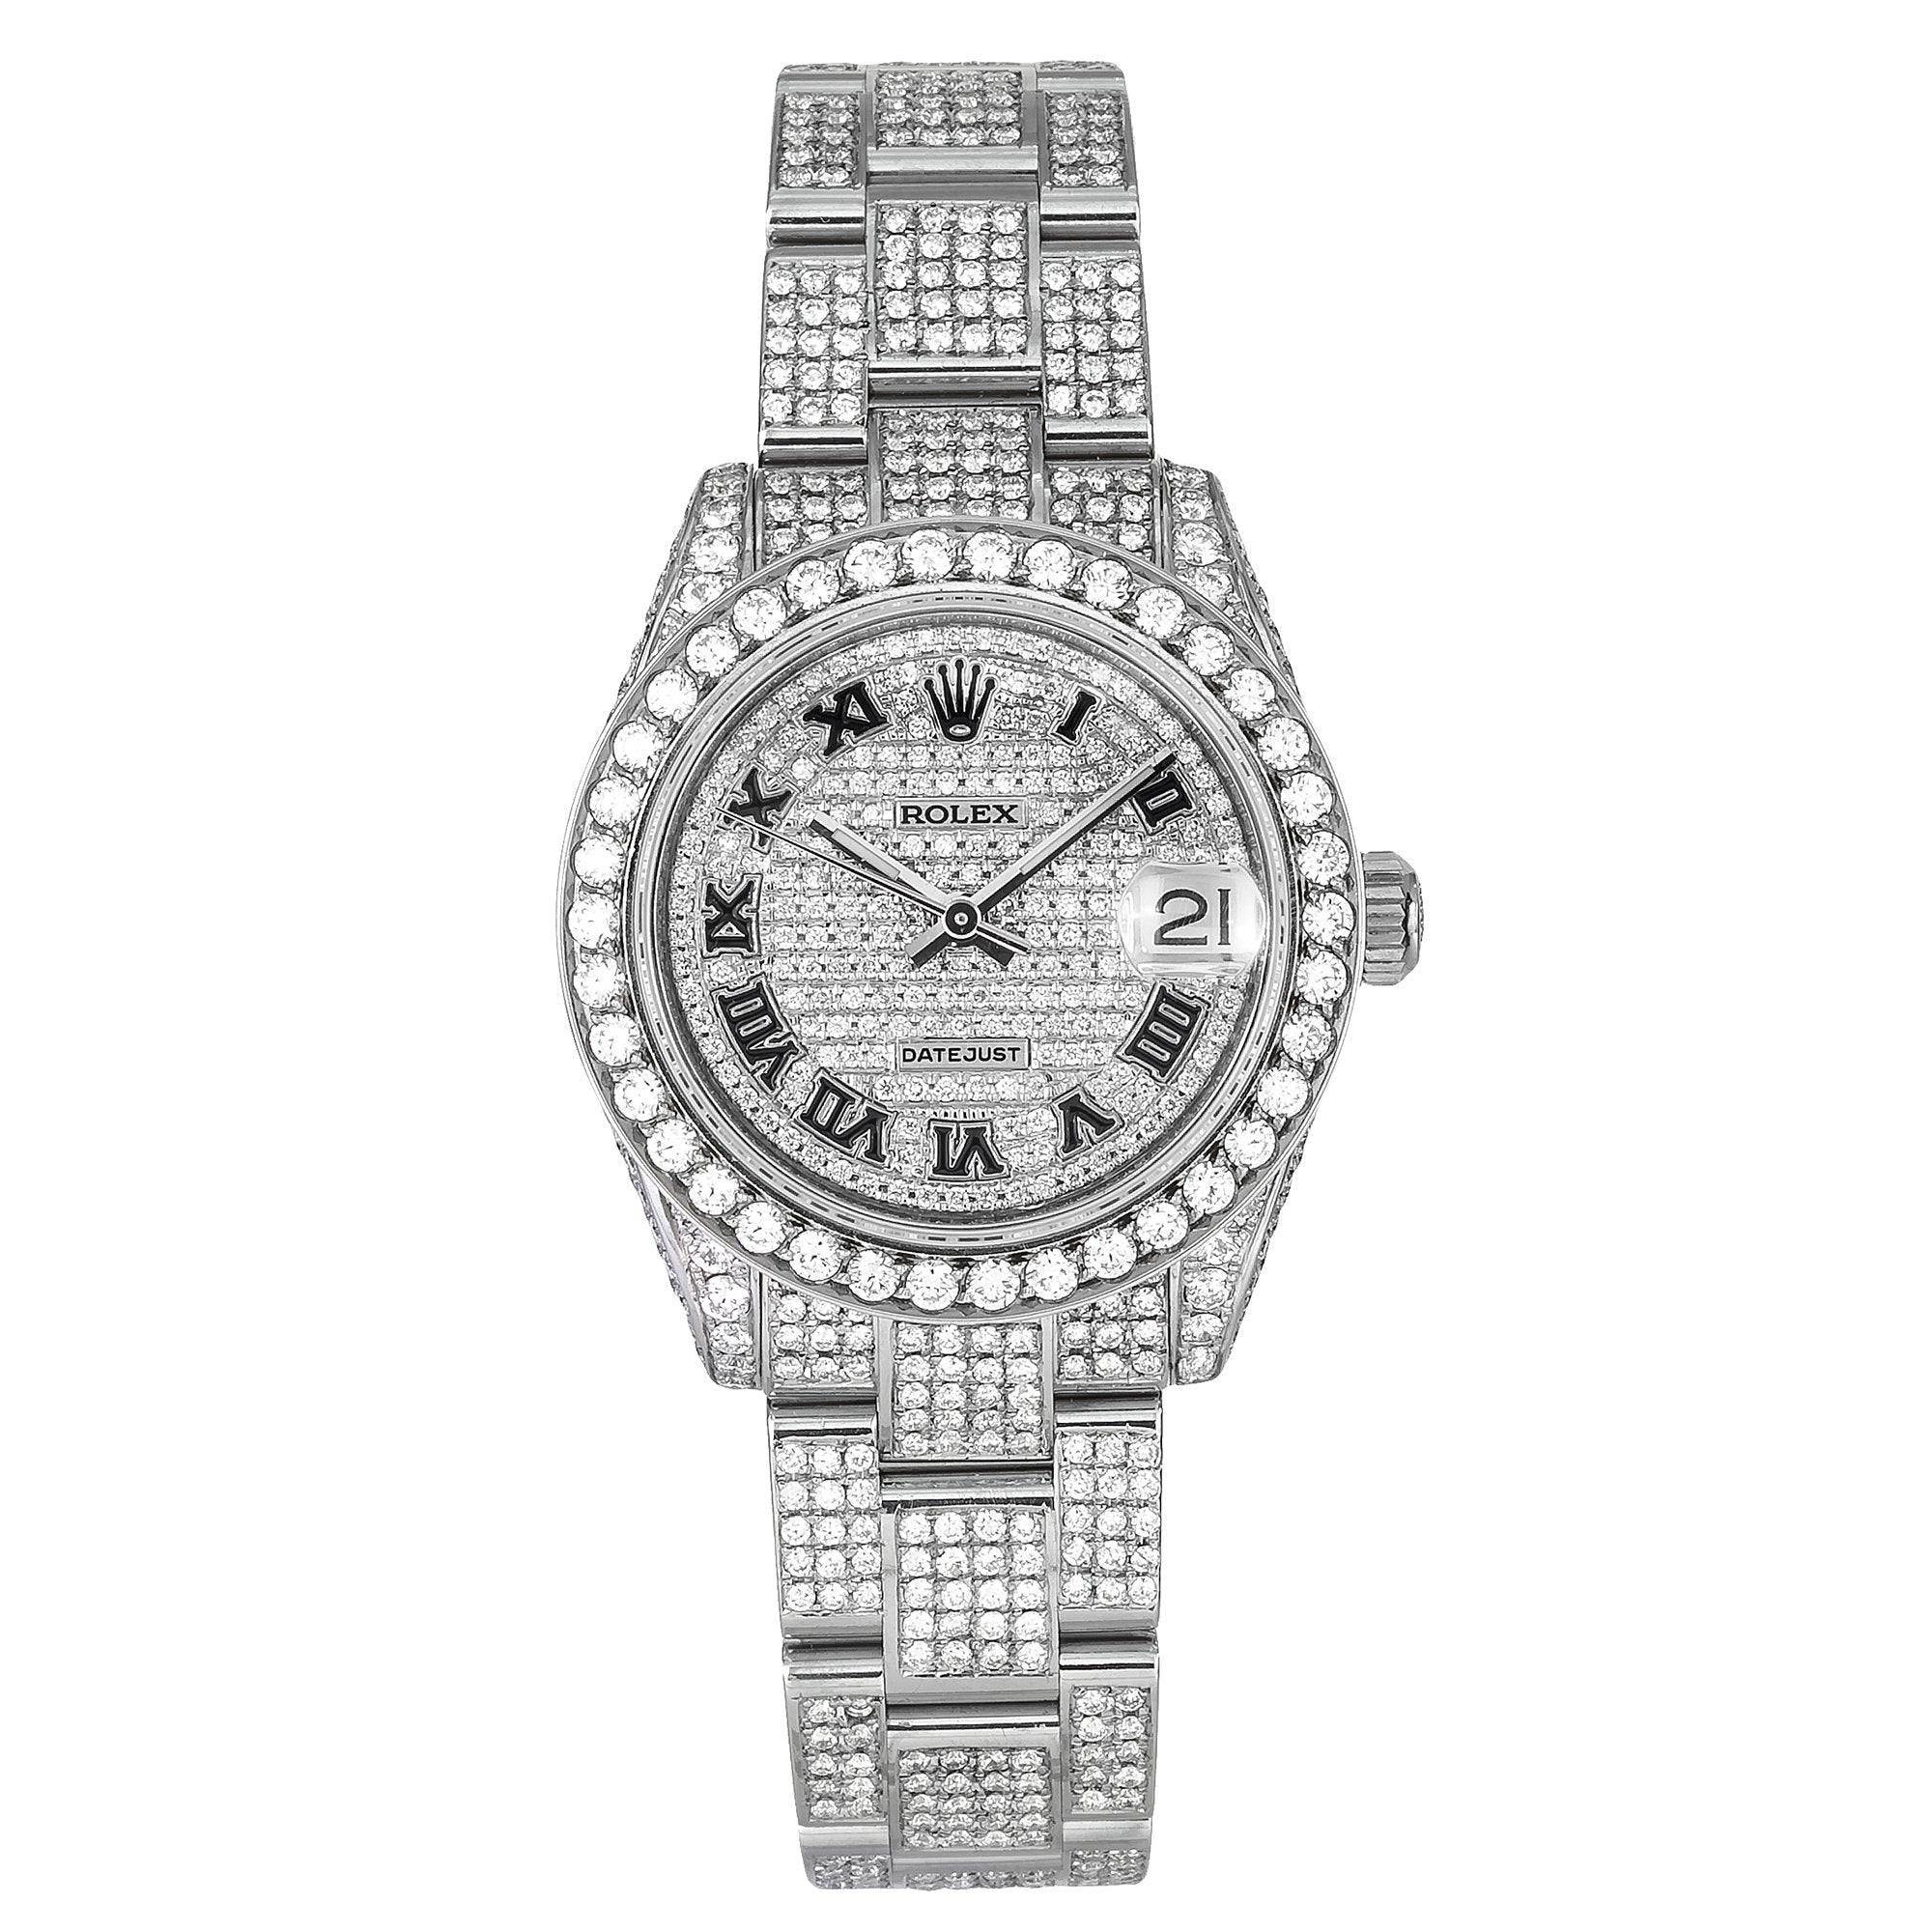 Rolex Lady-Datejust Diamond Watch, 178240 31mm, Iced Out With 8.75 CT Diamonds